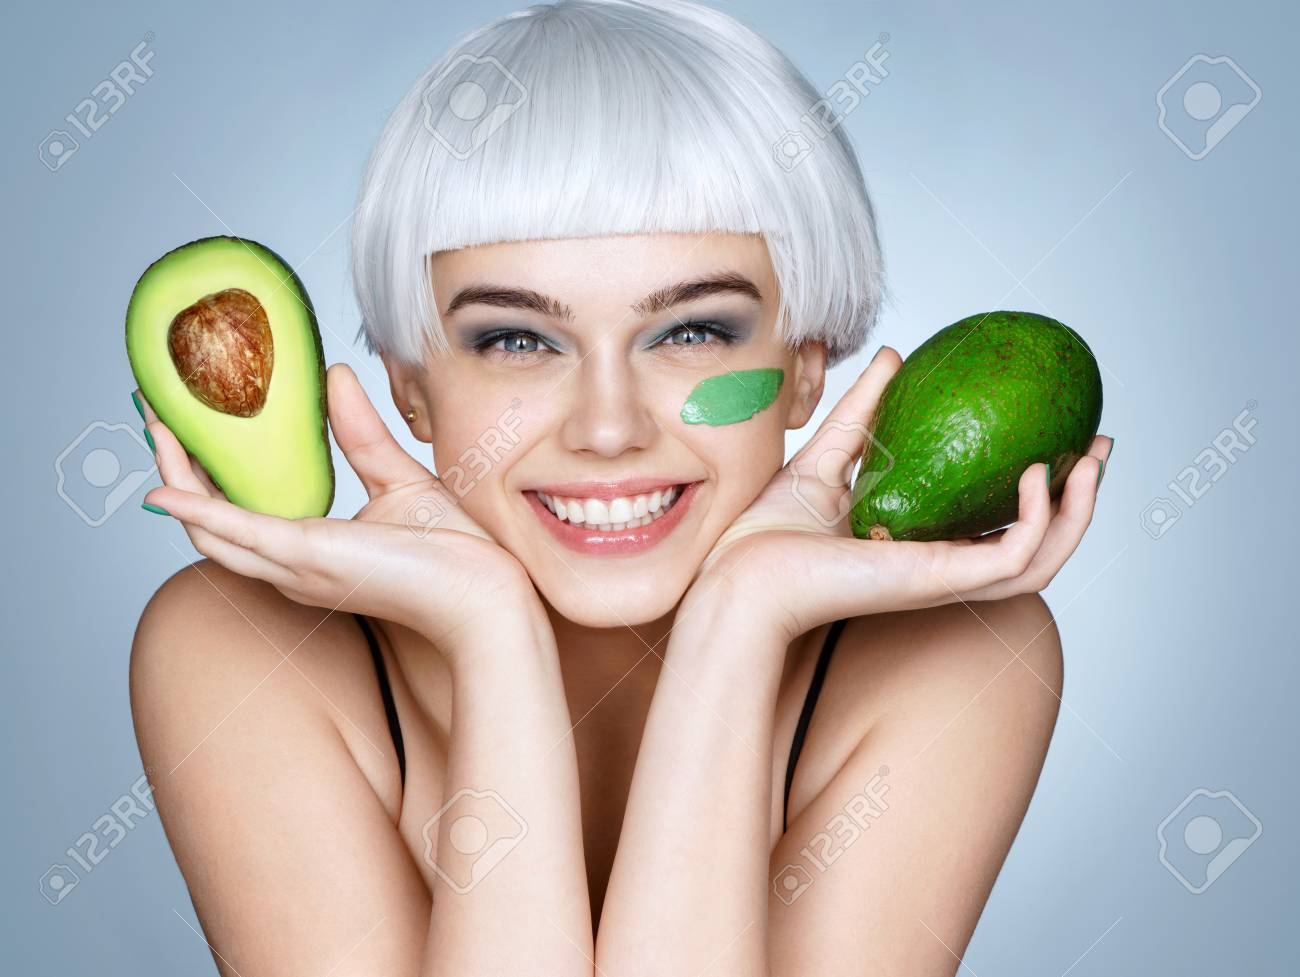 Happy smiling girl with green avocado. Photo of smiling blonde girl on blue background. Skin care and beauty concept. - 88679197